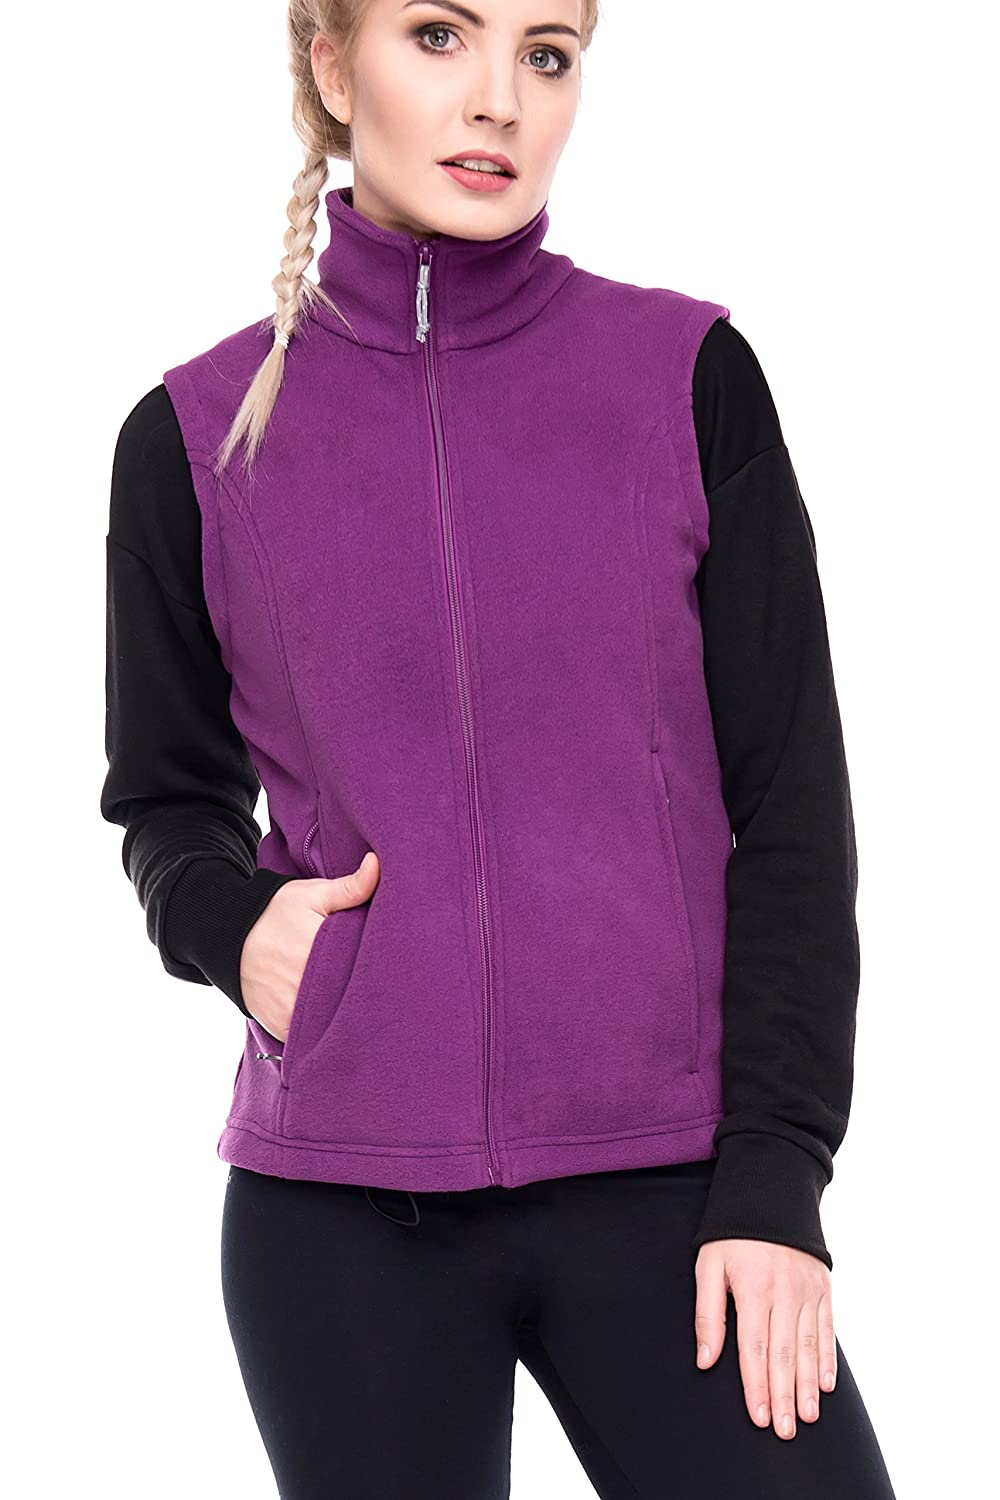 Oalka Women's Spring Fall Full Zip Fleece Vest MOKV069